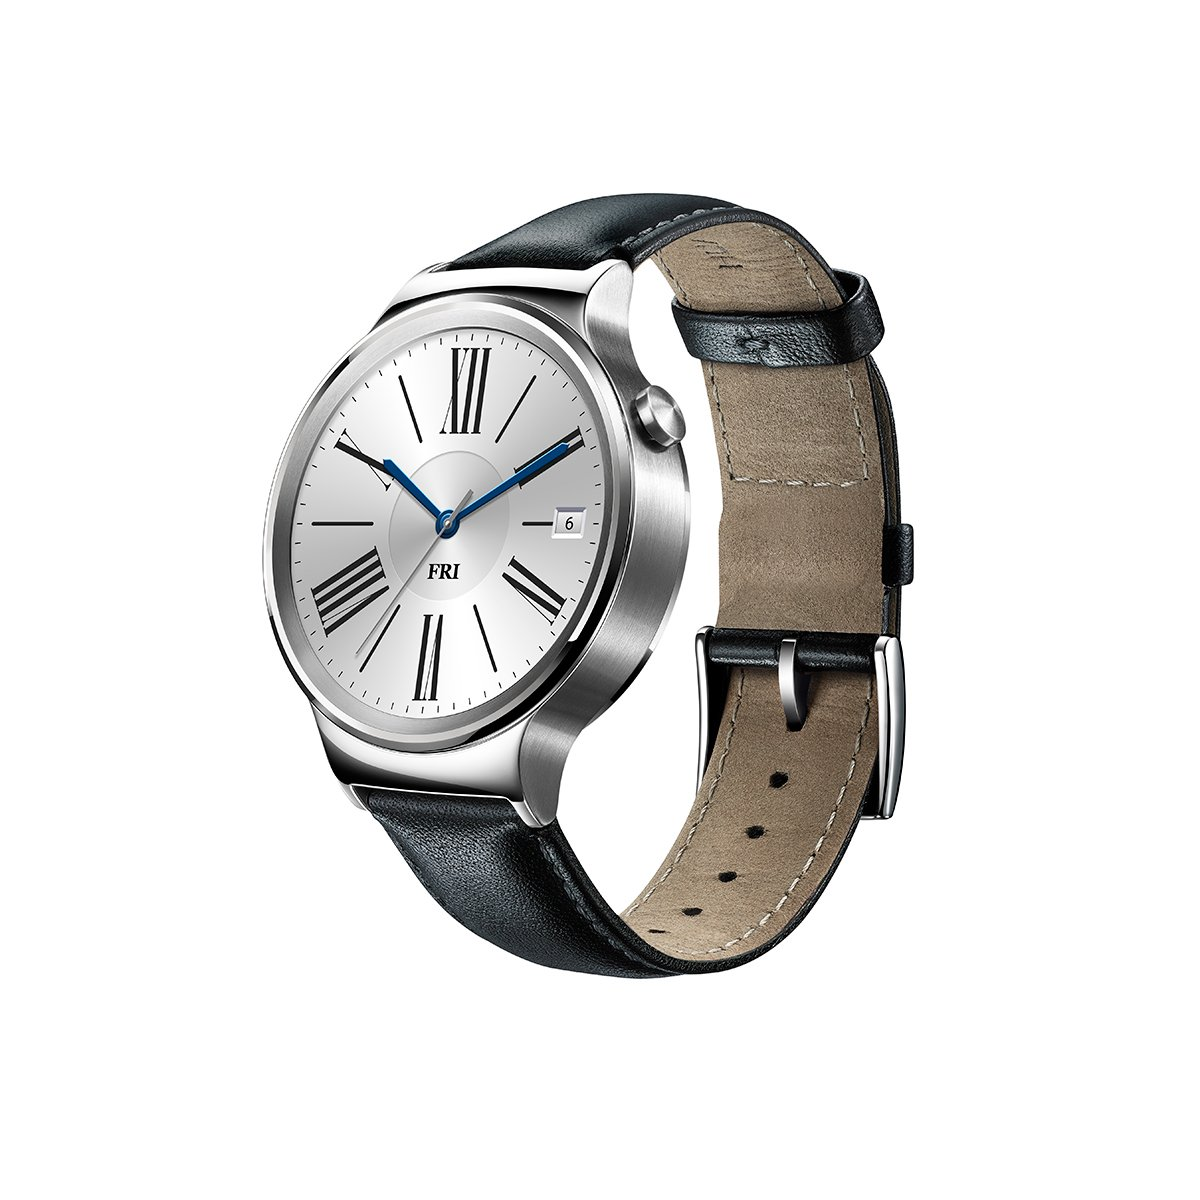 huawei smartwatch. amazon.com: huawei watch stainless steel with black suture leather strap (u.s. warranty): cell phones \u0026 accessories smartwatch m